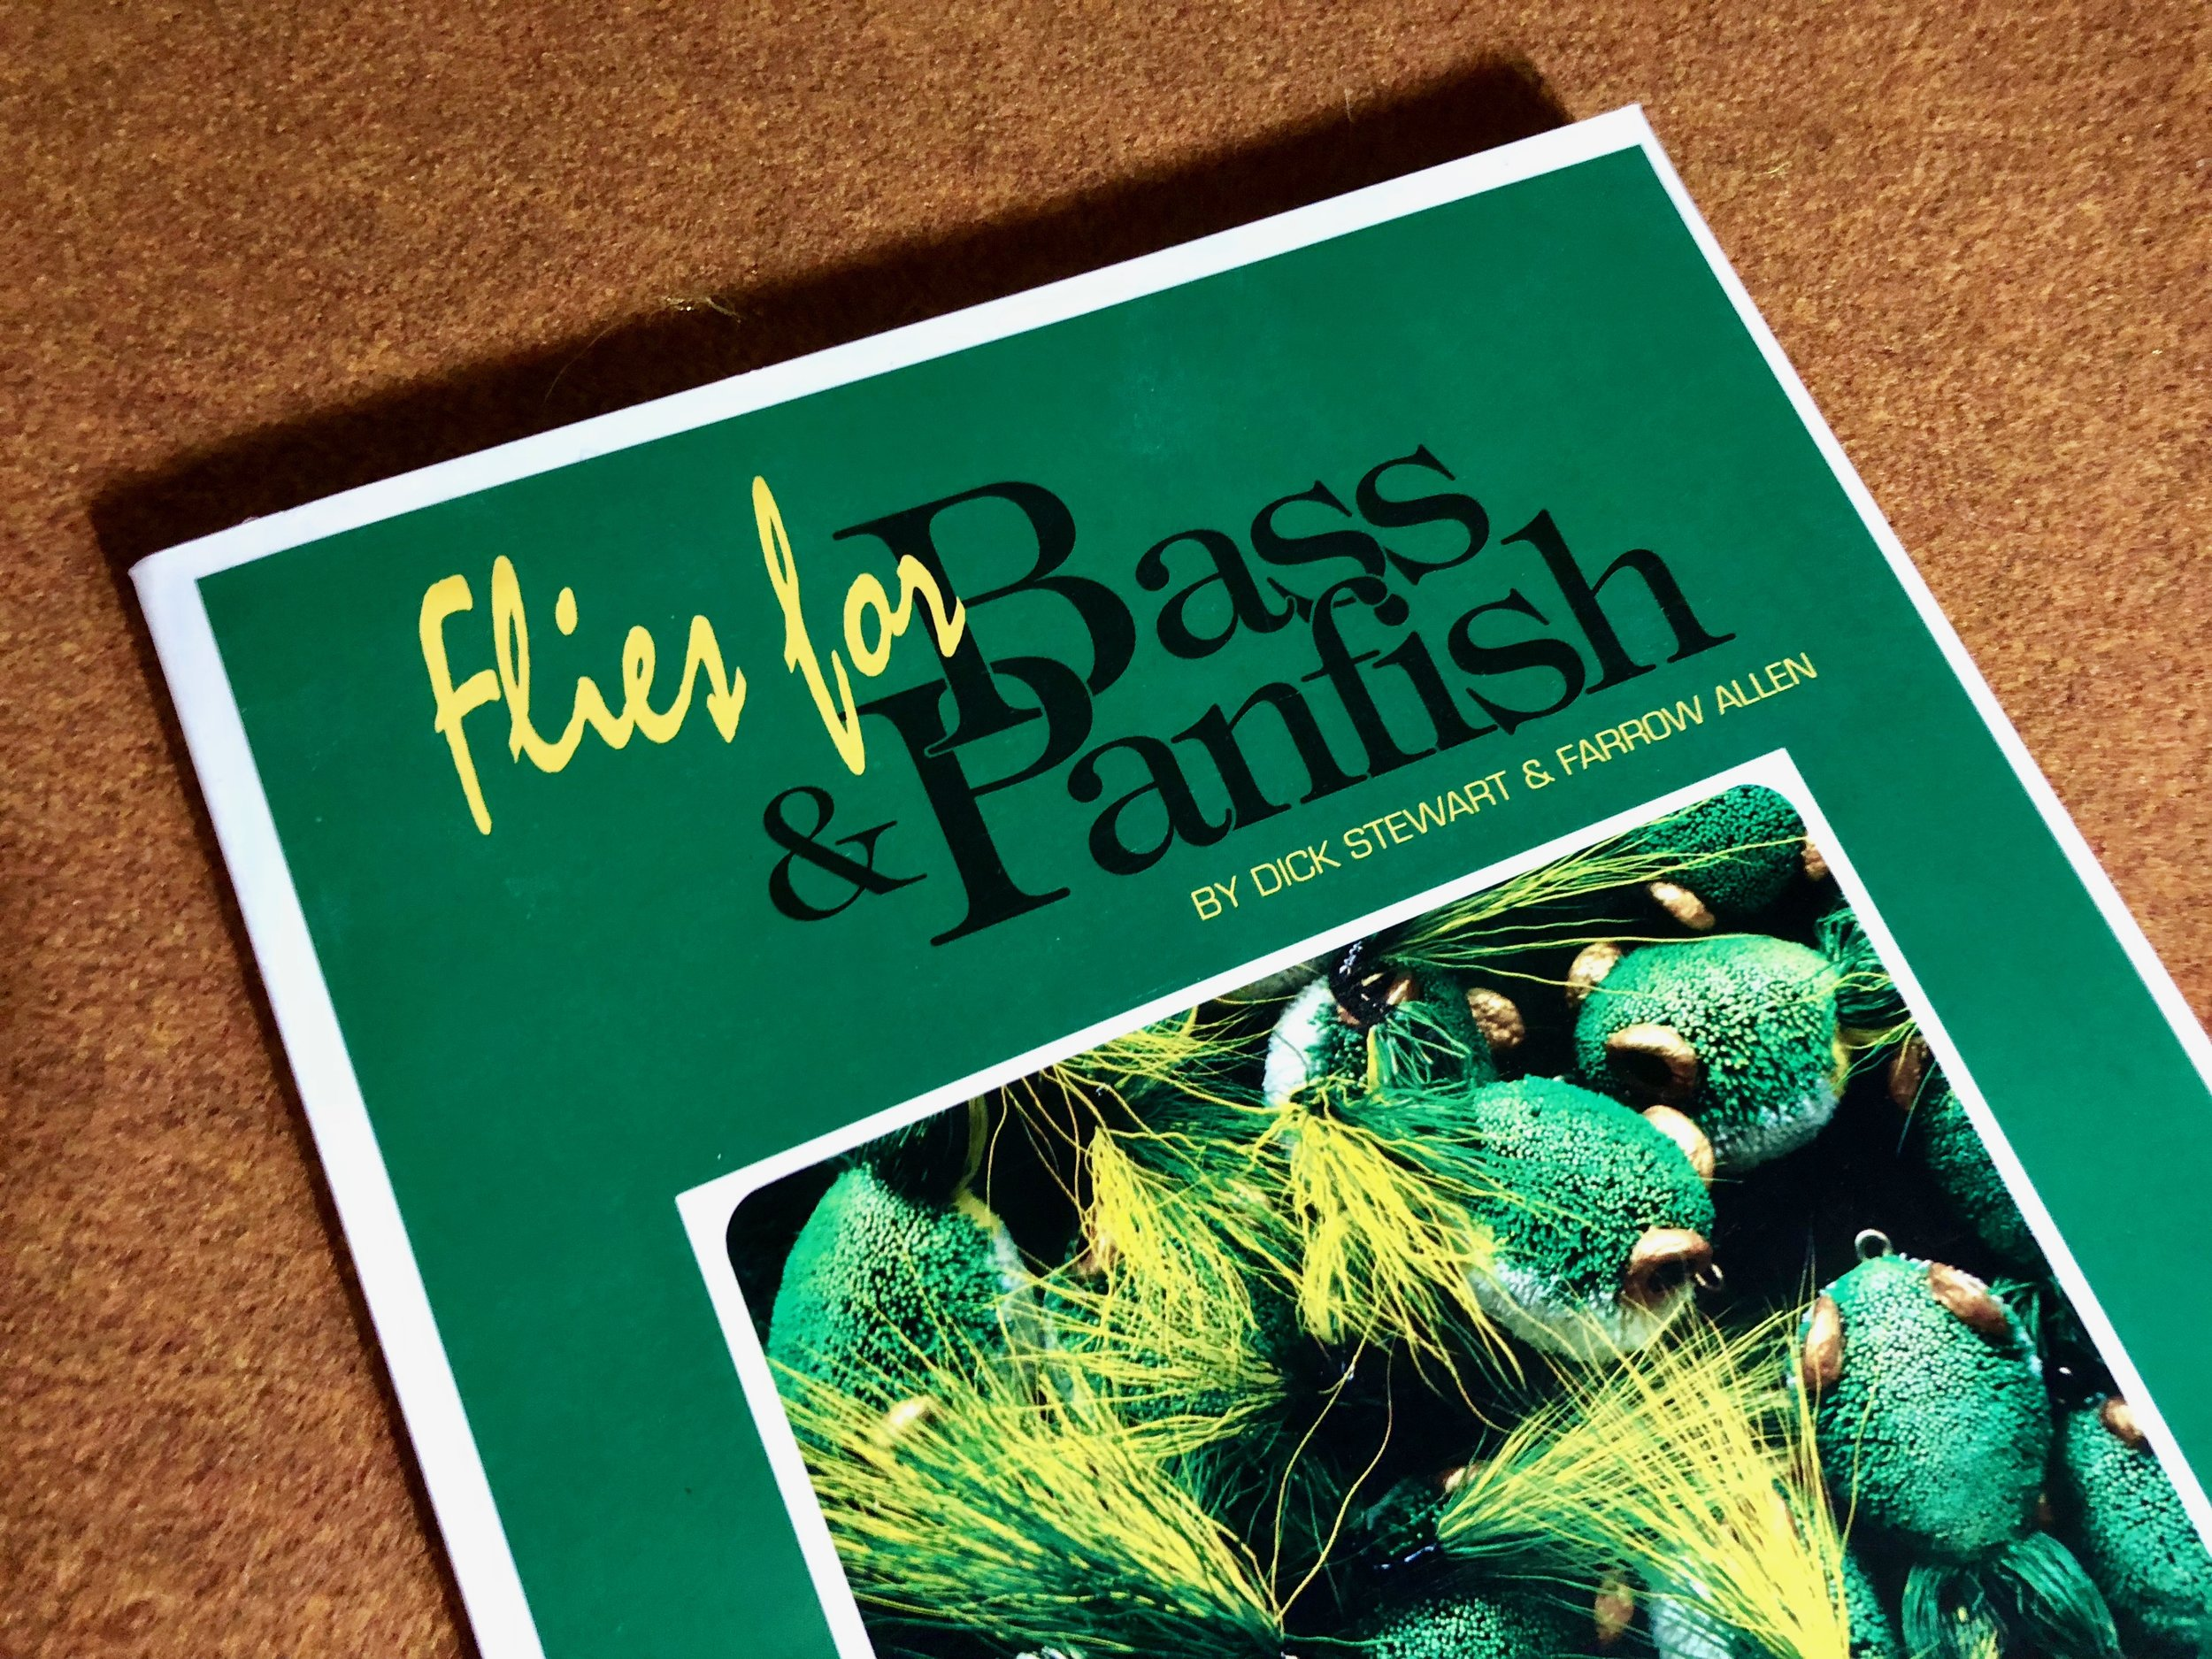 This book is a good place to start if you are looking for some bass and panfish patterns.